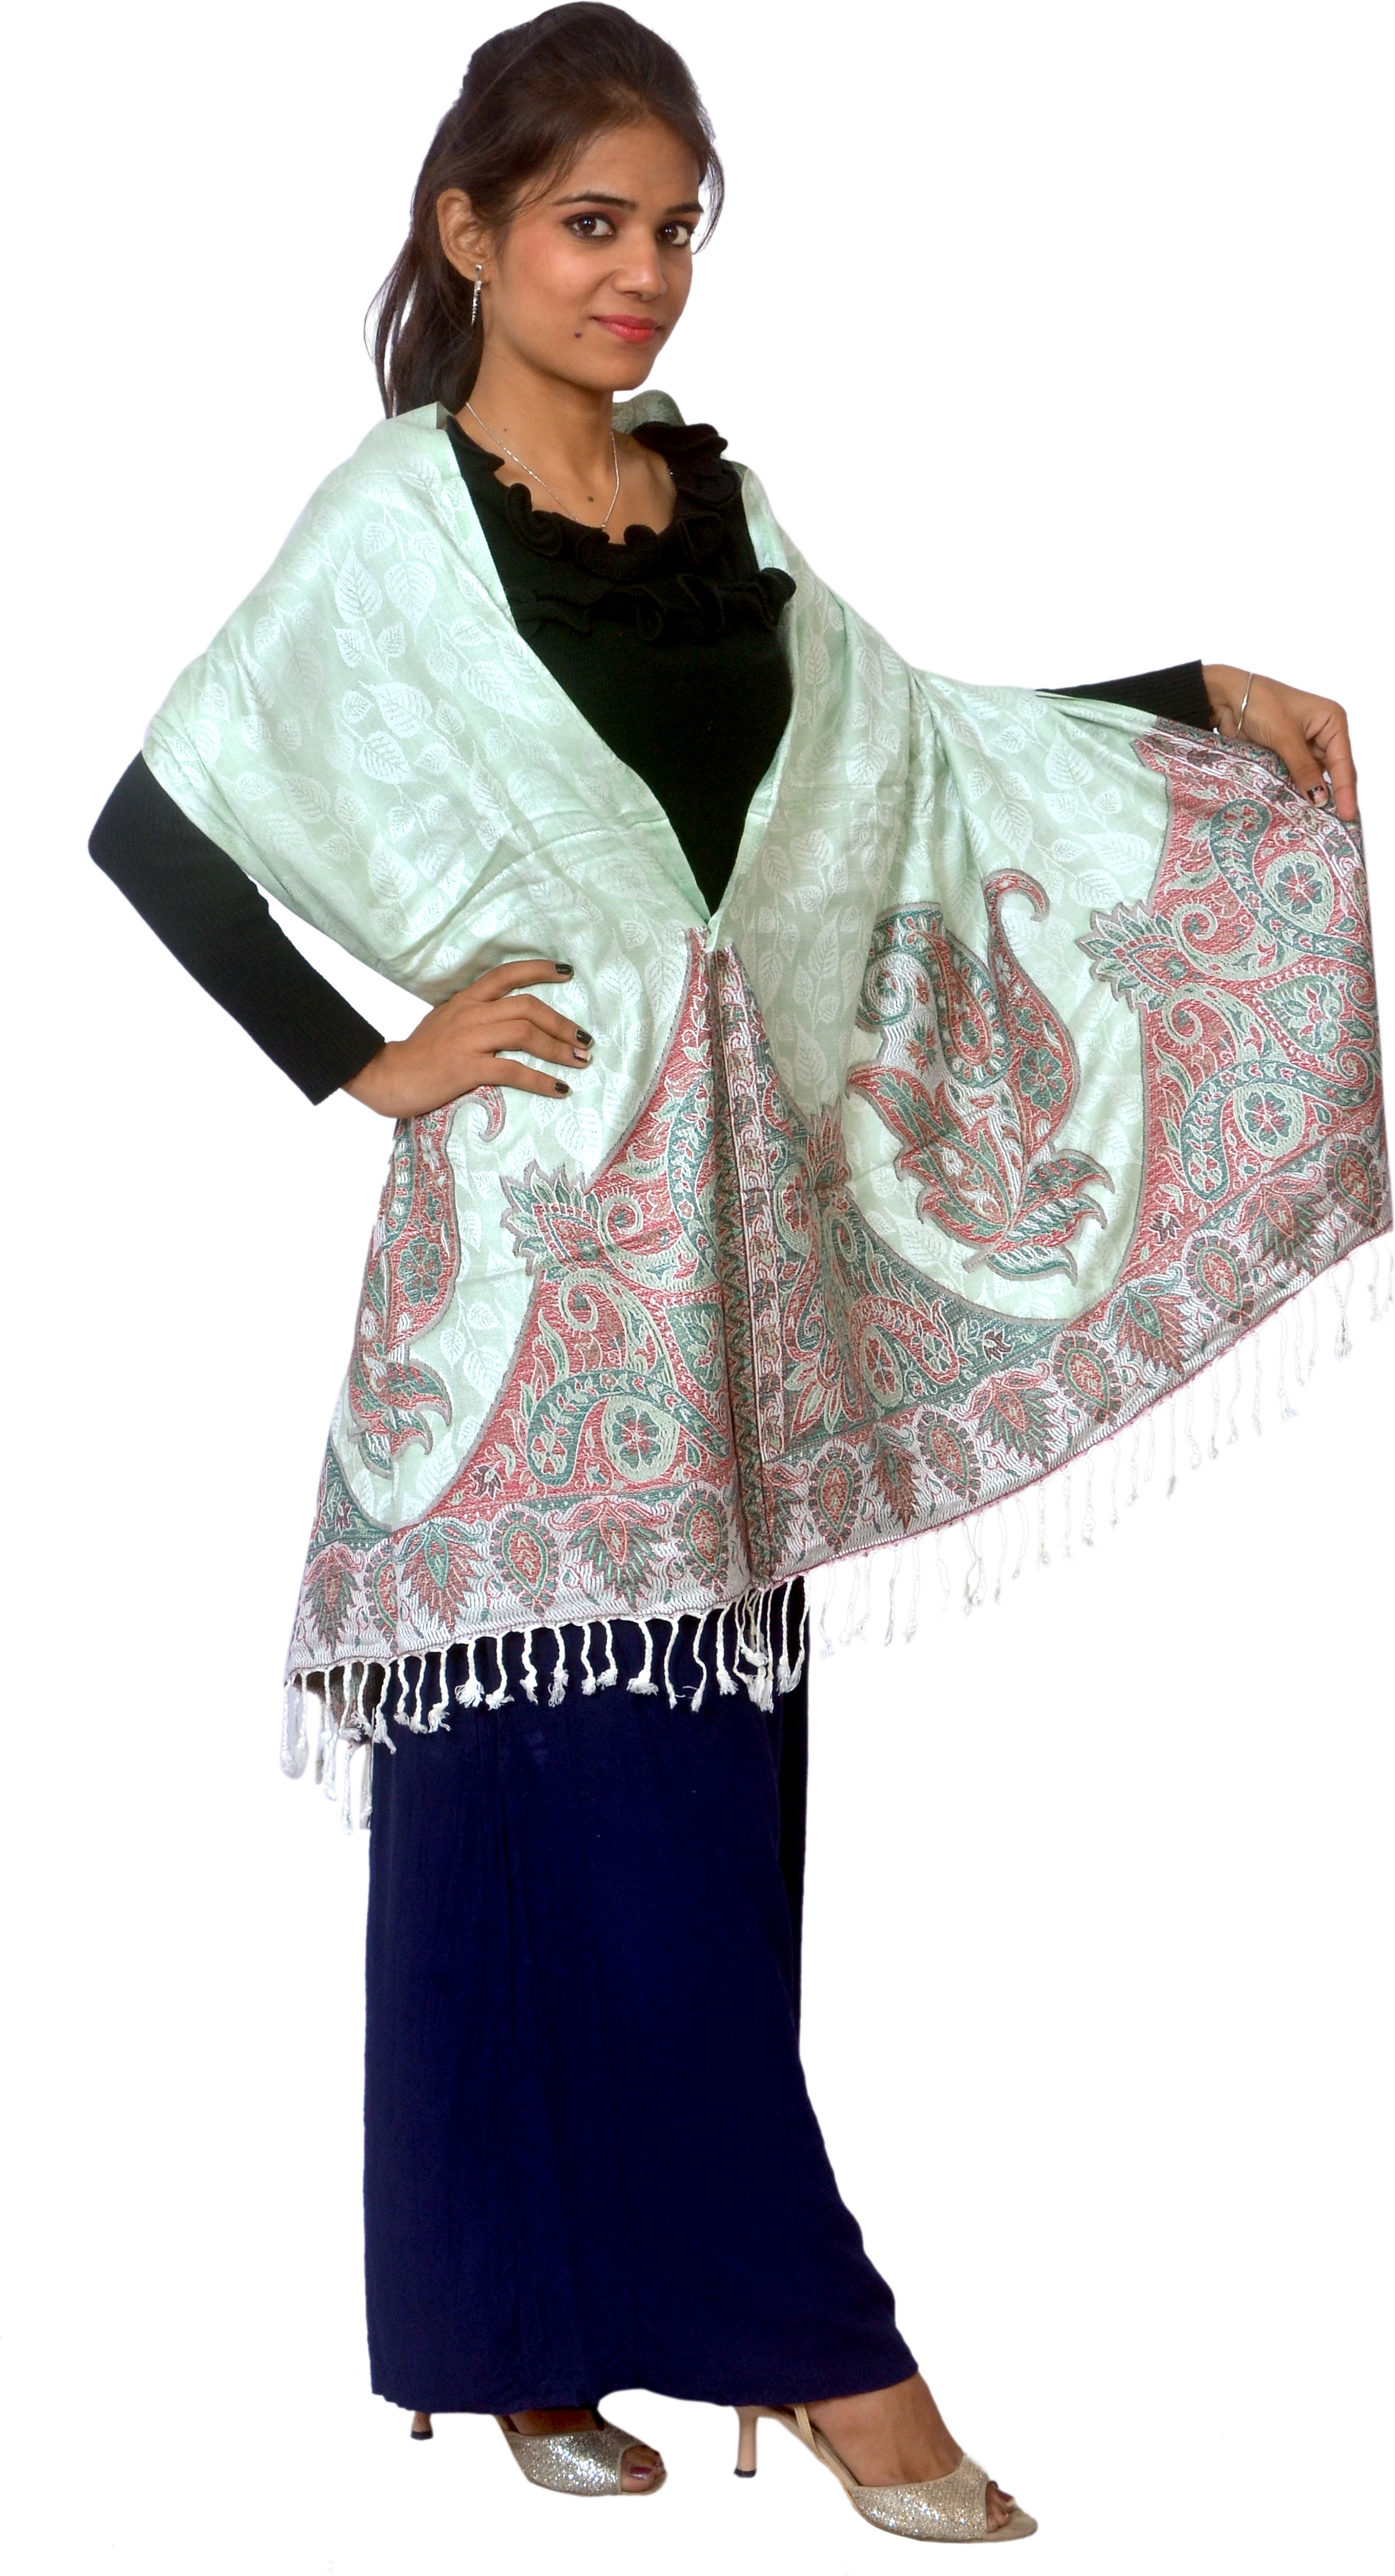 Cloud9Emporio Sat0044 Viscose Floral Print Womens Shawl